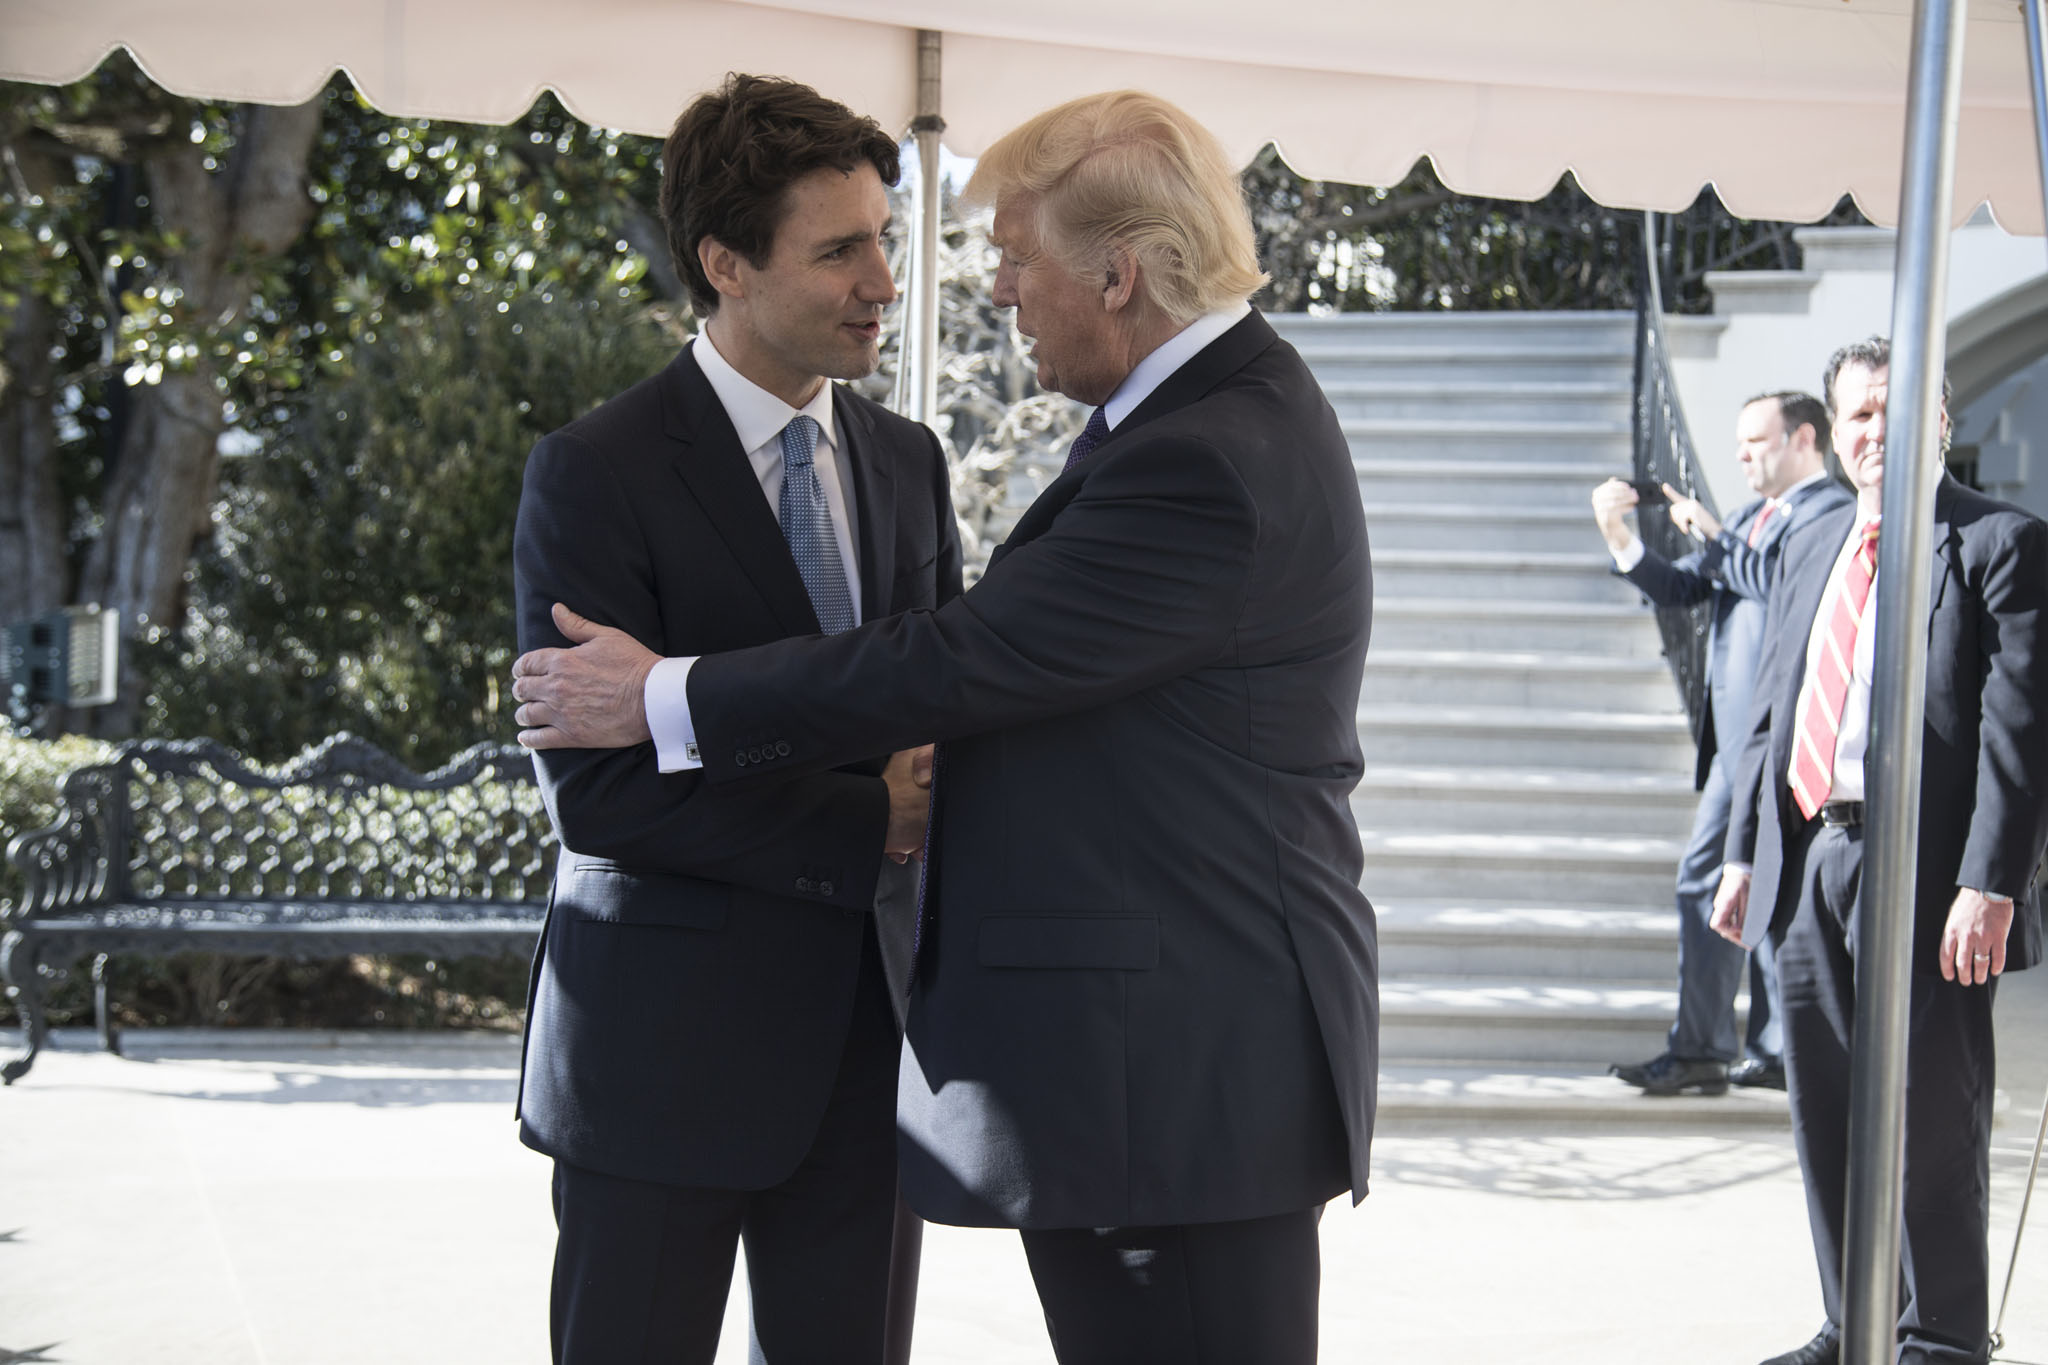 The G7: Hard Talk or a Sleepwalk?